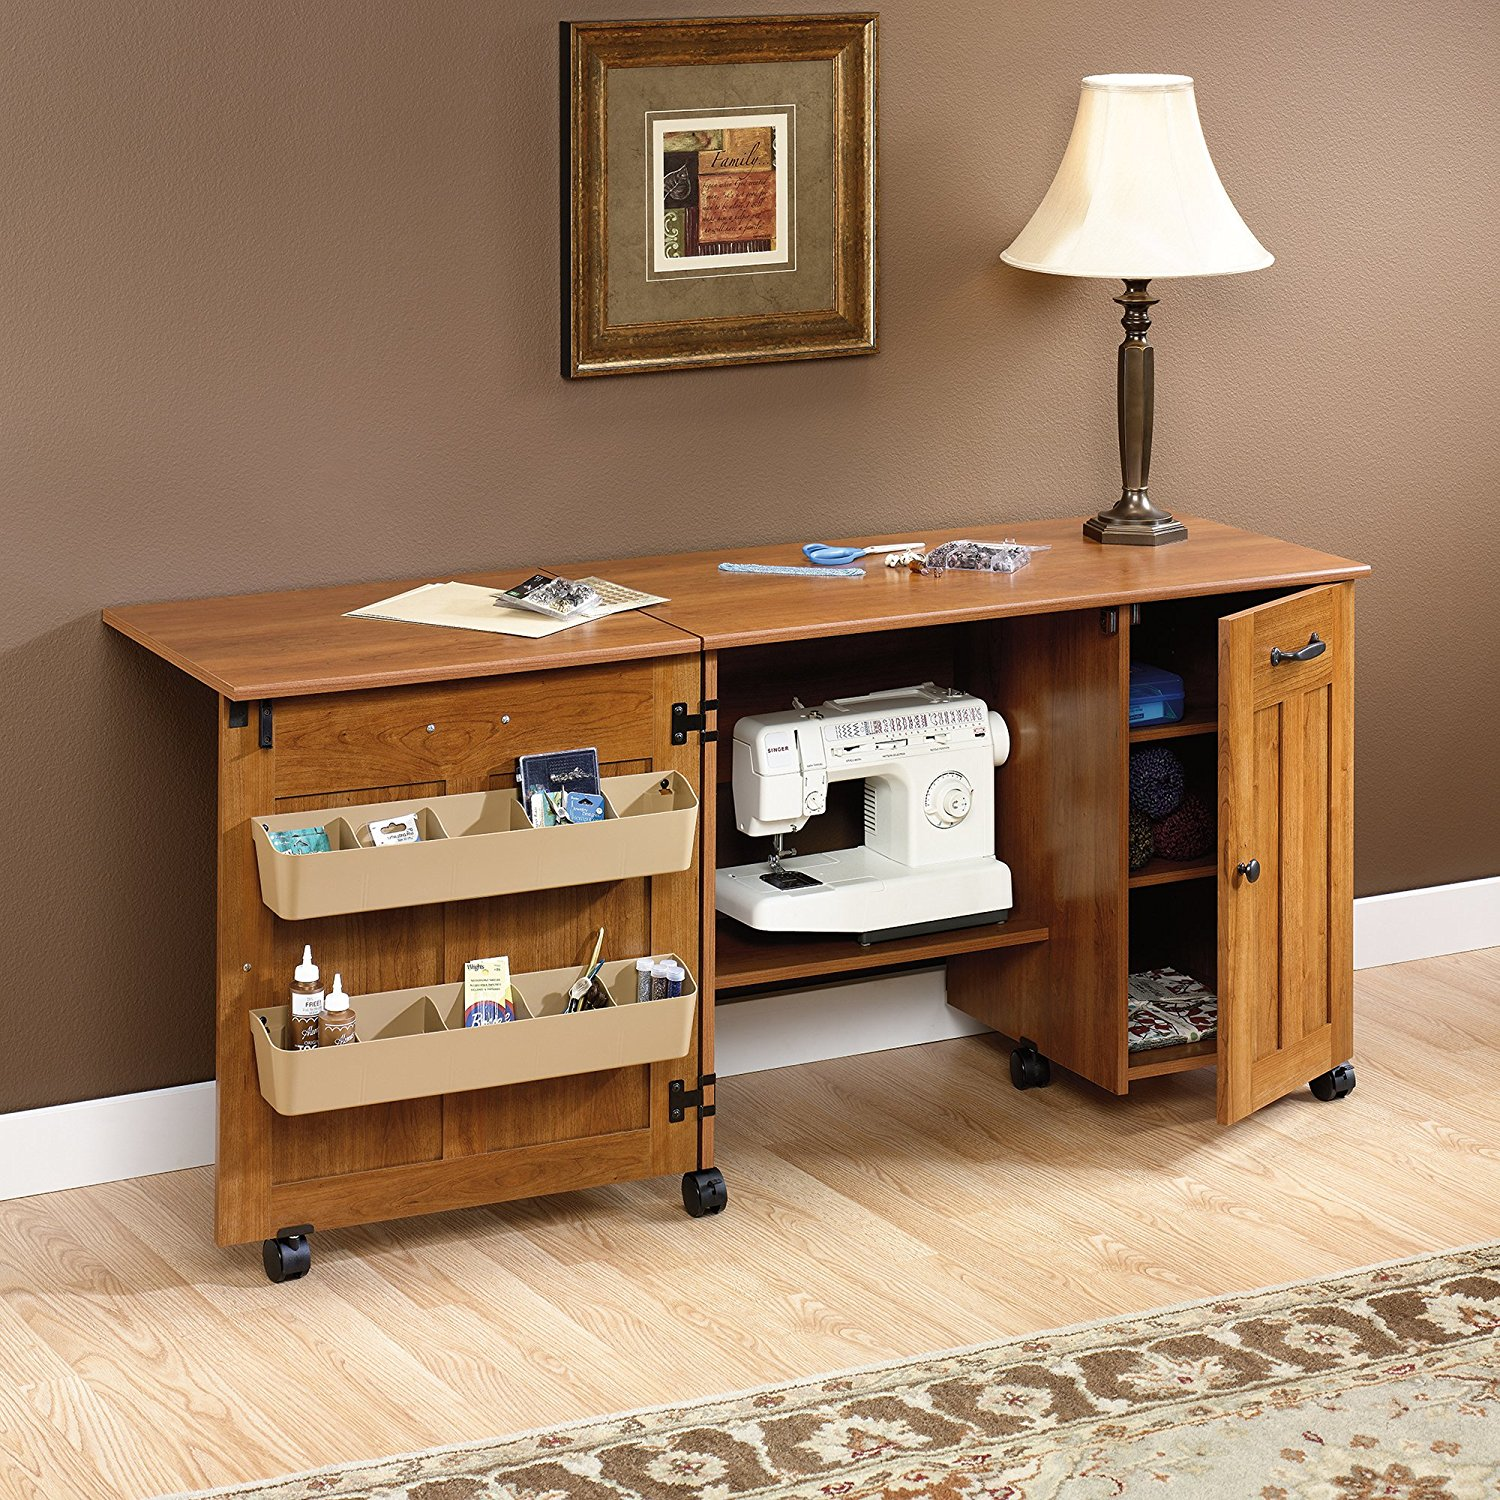 The Sauder Sewing Craft Center Folding Table